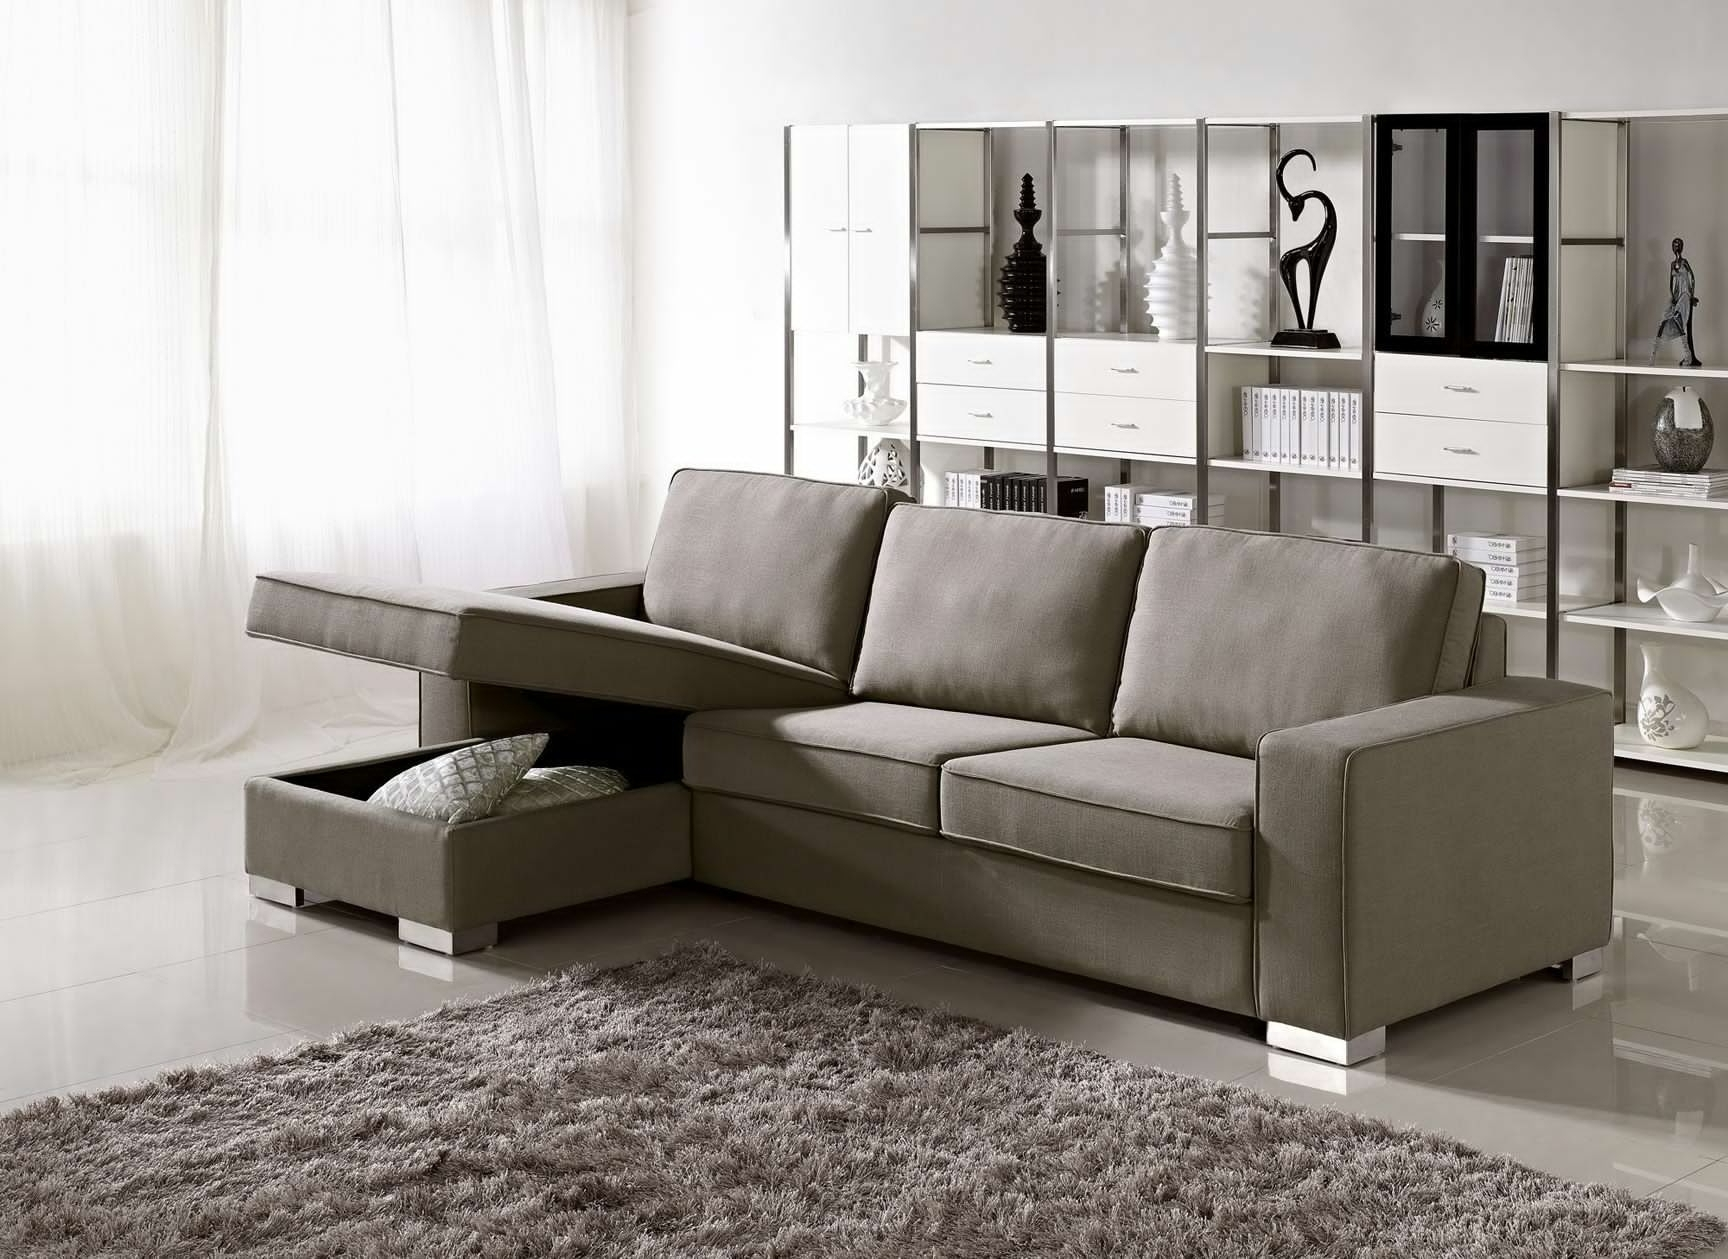 Well Liked Sectional Sofas For Condos In Sectional Sofa Design: Apartment Size Sectional Sofa With Chaise (View 15 of 15)